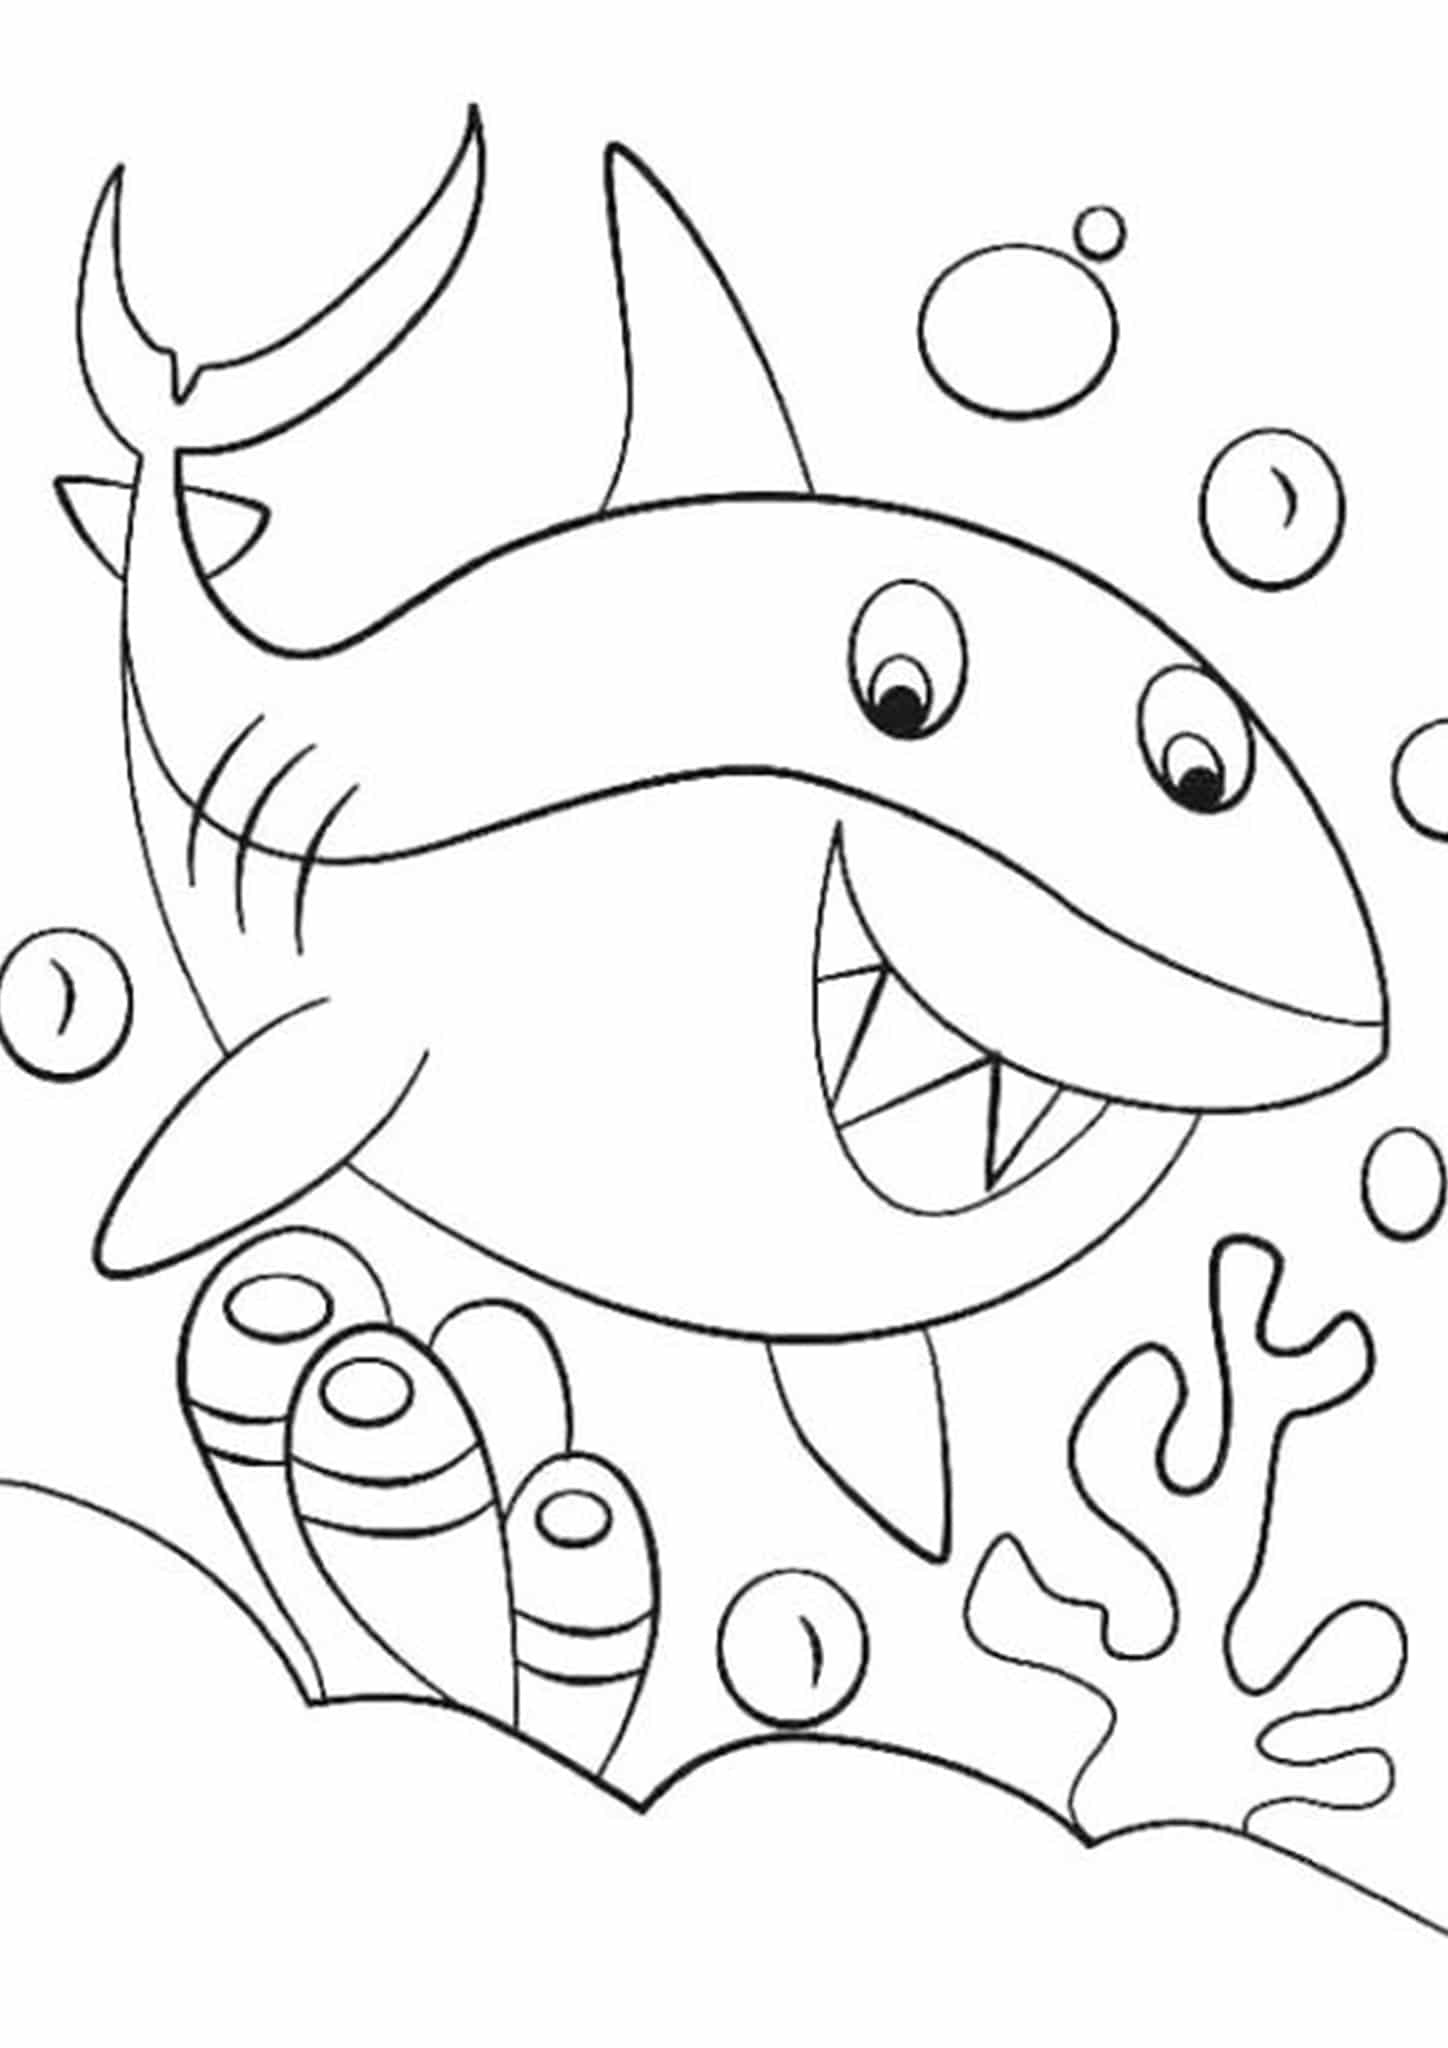 shark coloring pictures to print sharks to color for children sharks kids coloring pages shark coloring print pictures to